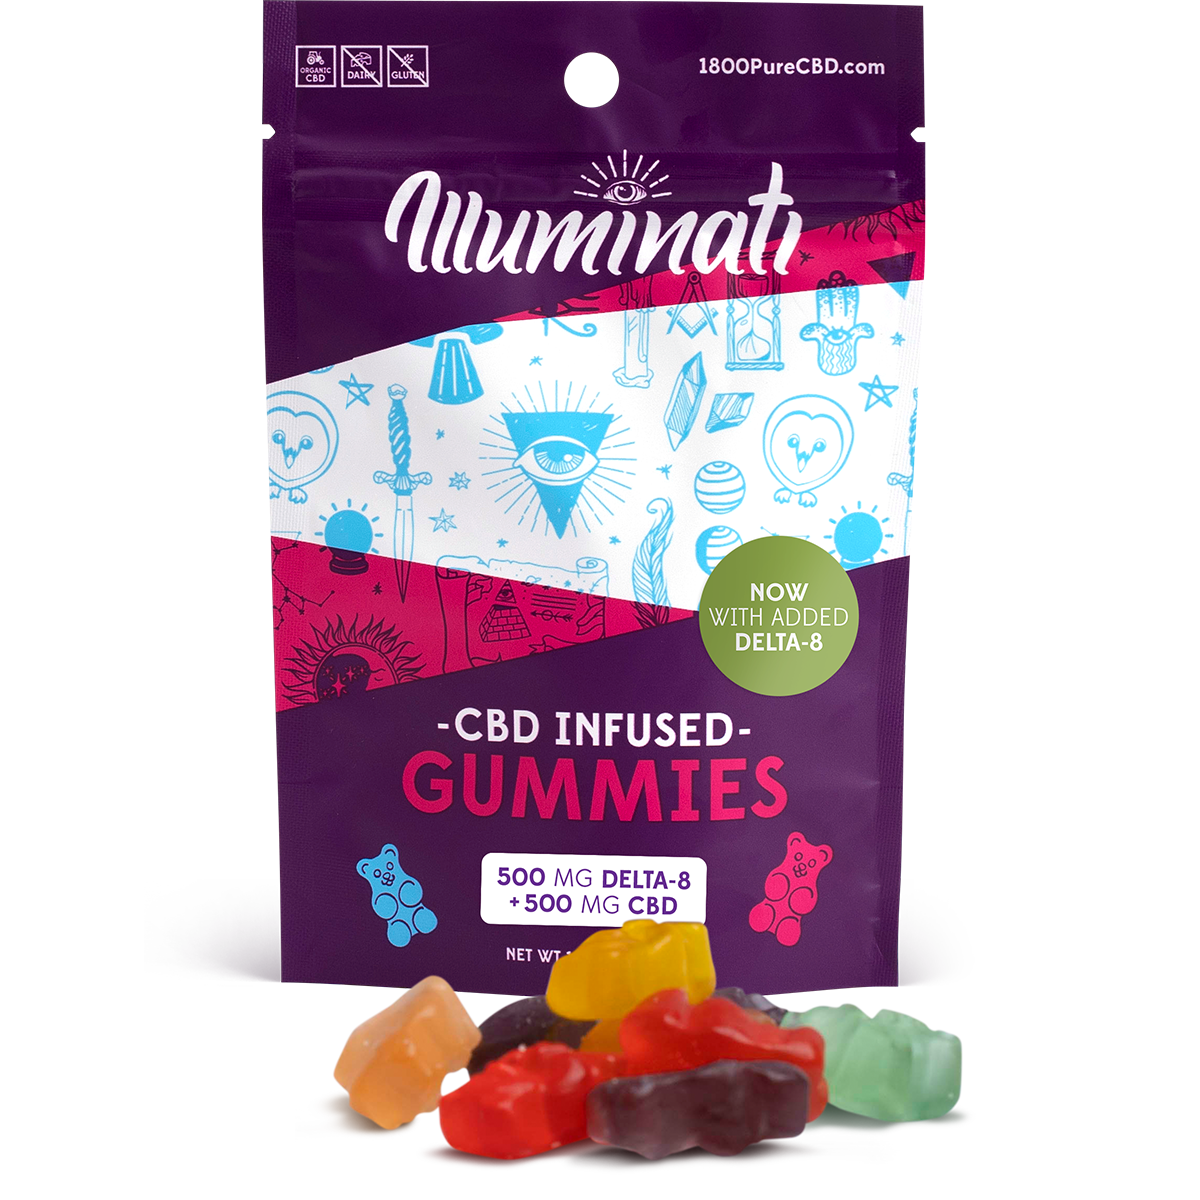 Delta-8-THC Illuminati gummies 500mg